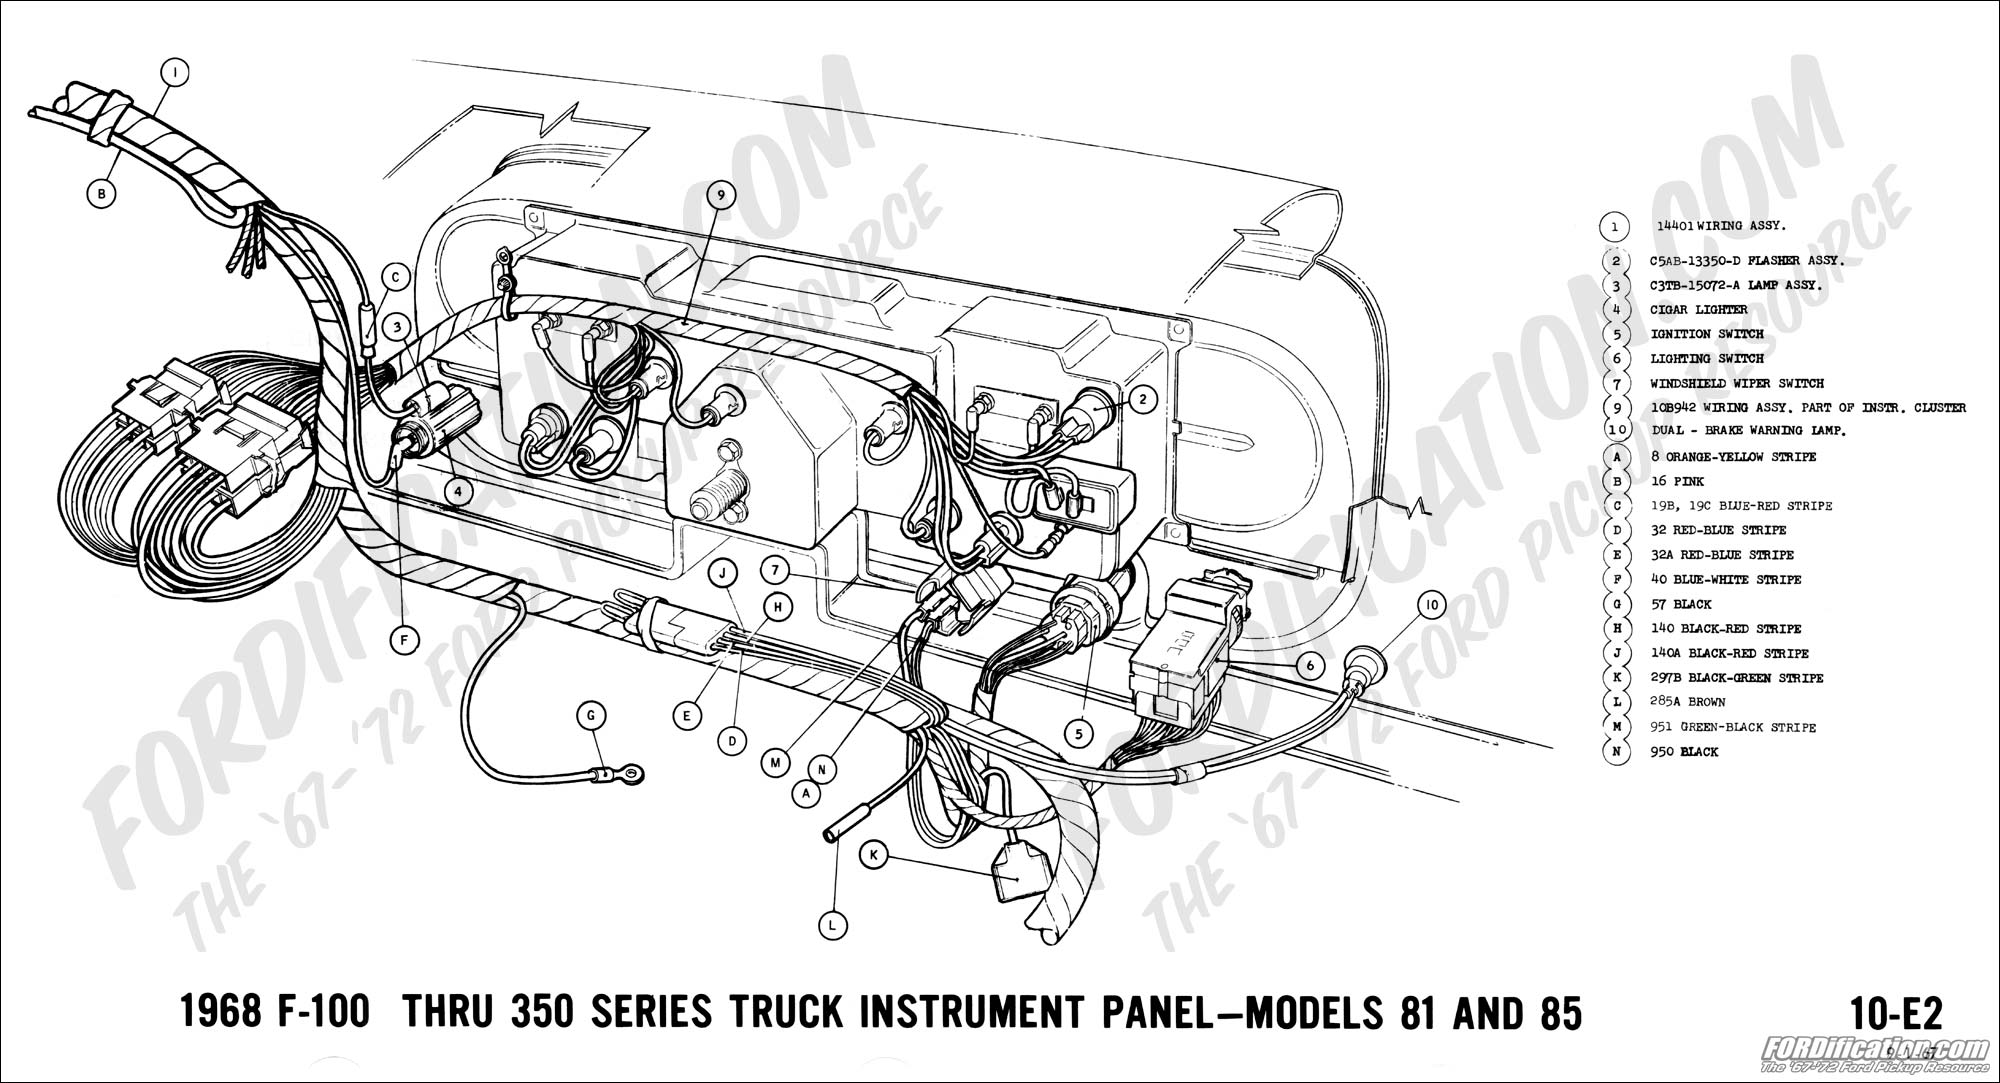 Chevrolet Chevy Van 5 0 1990 Specs And Images besides Schematics h likewise 1961 Ford Galaxie Wiring Diagram in addition 1972 Chevelle Horn Relay Wiring Diagram besides 1968 Mustang Wiring Diagram Vacuum Schematics. on 1969 impala wiring diagram